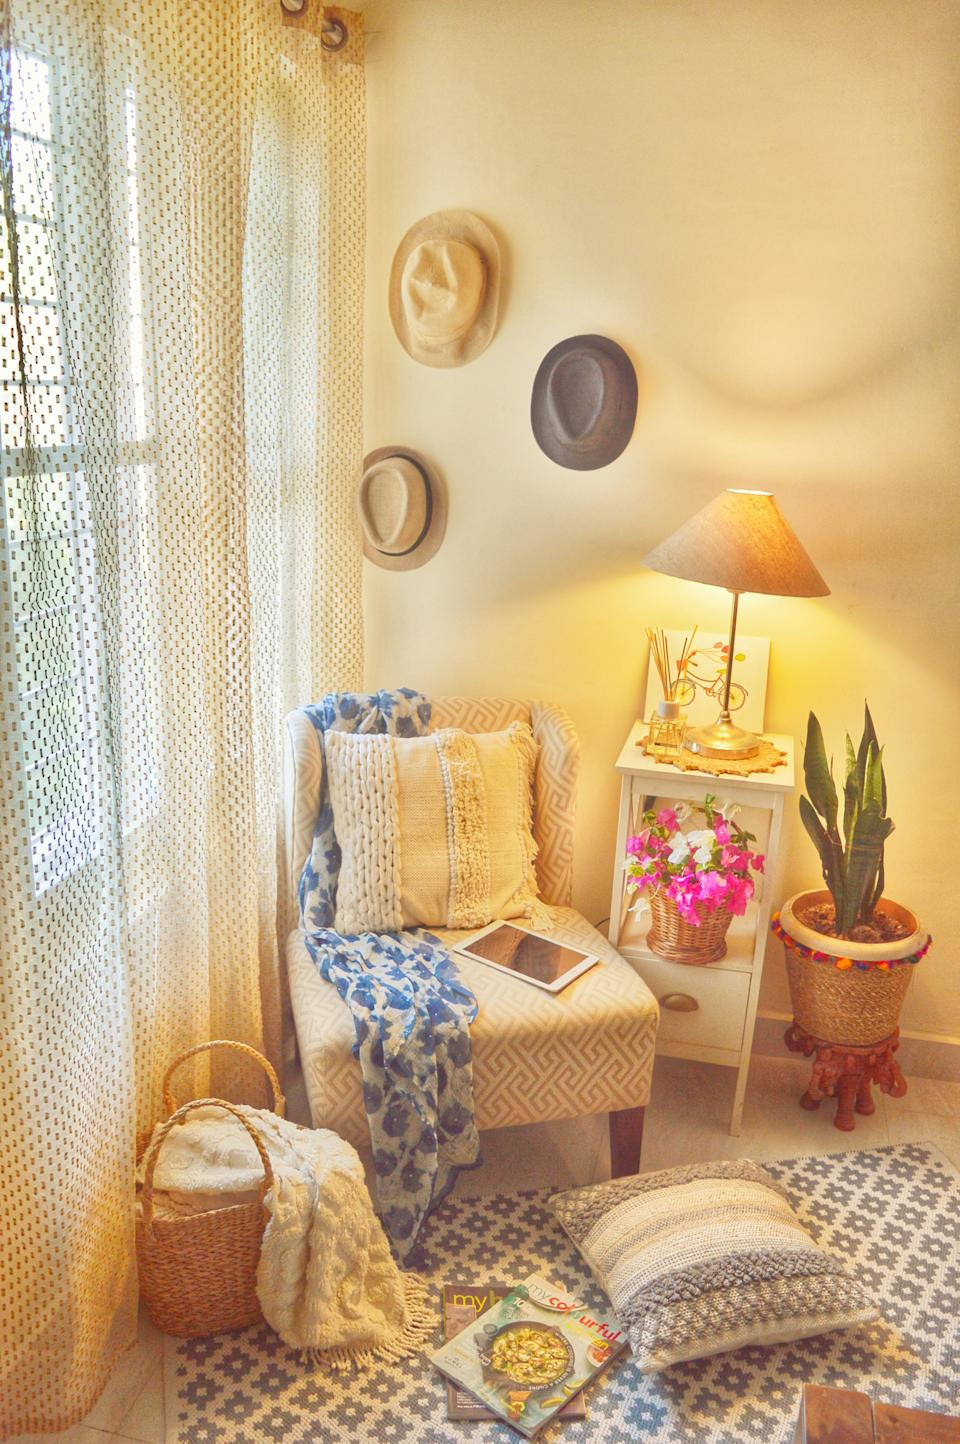 A reading nook in the master bedroom is where Preeti enjoys some me-time with a cup of coffee and a good read.